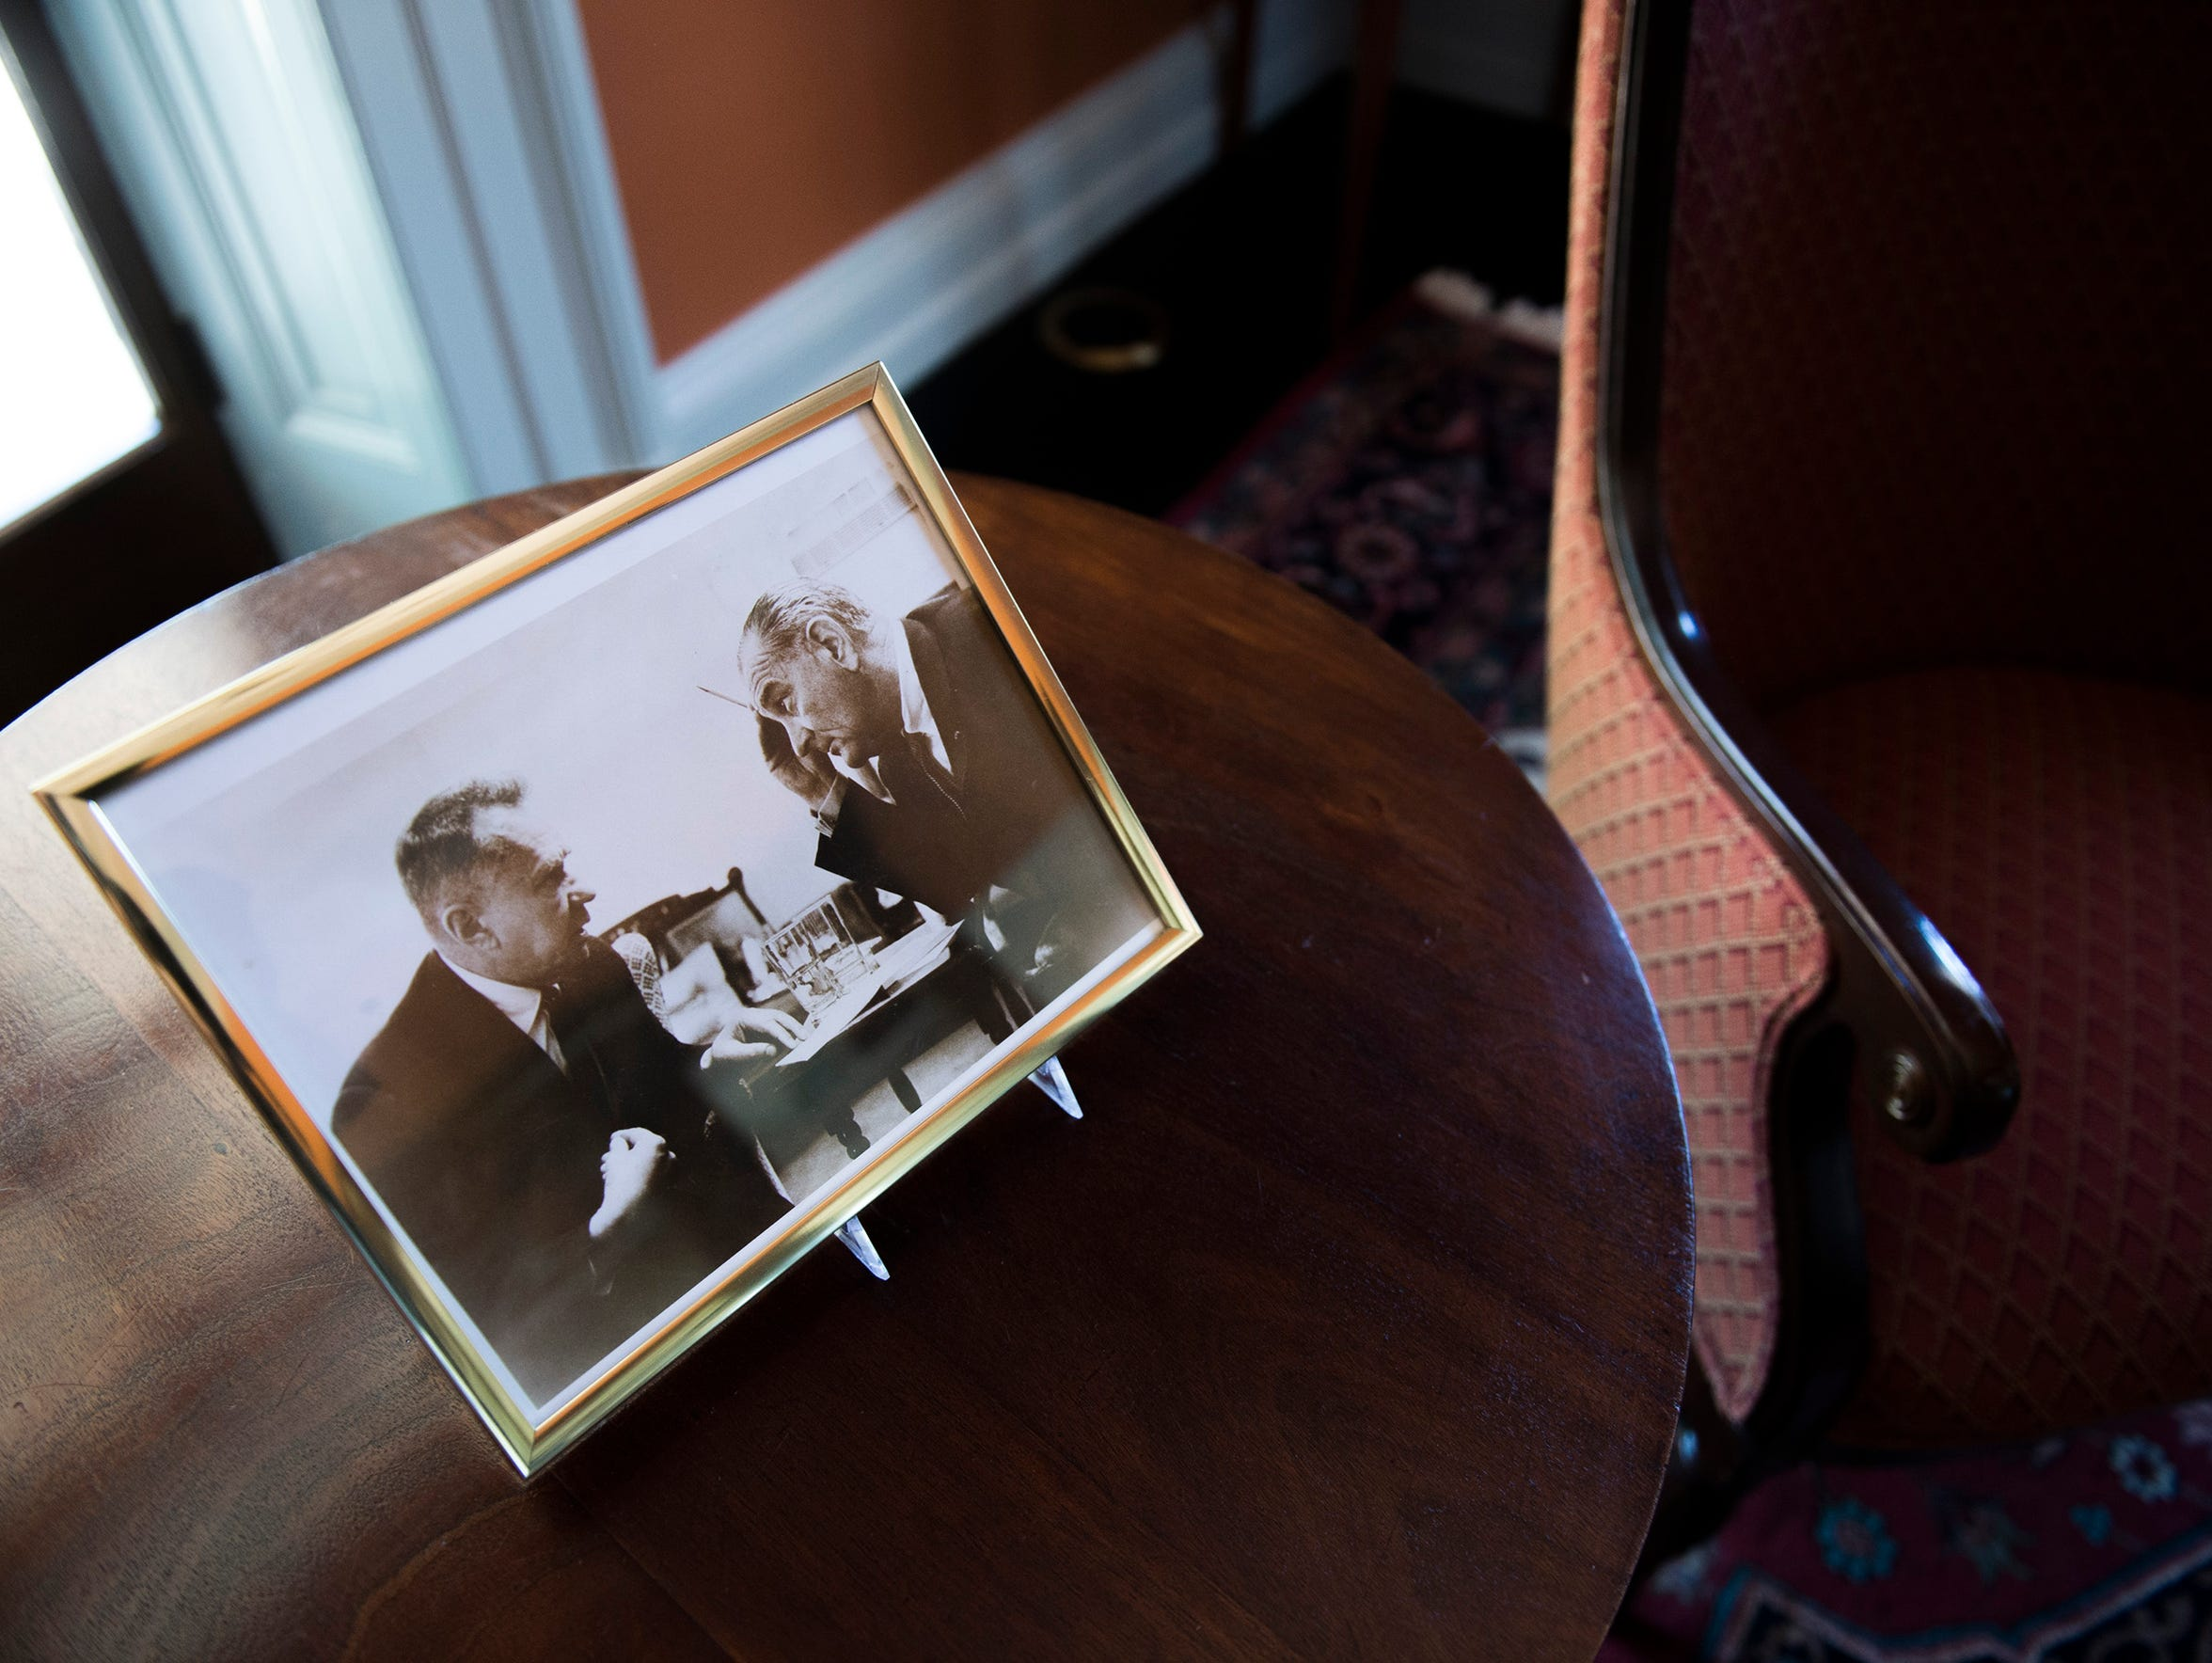 A photograph is displayed on the table between the